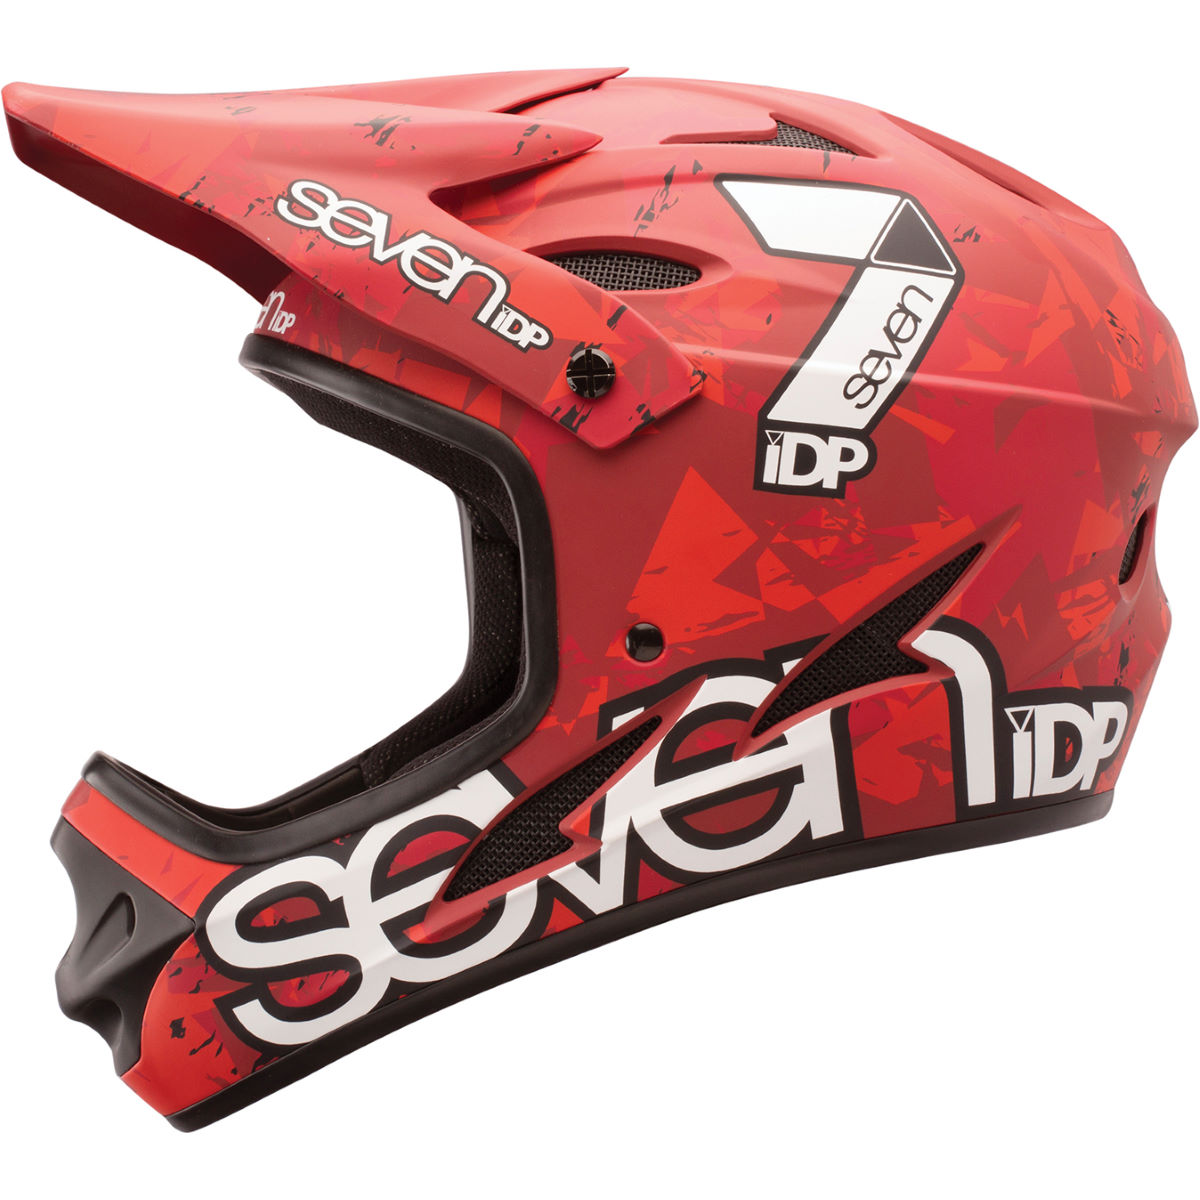 Casque 7 iDP M1 - L Matt Red Camo - Whit Casques VTT